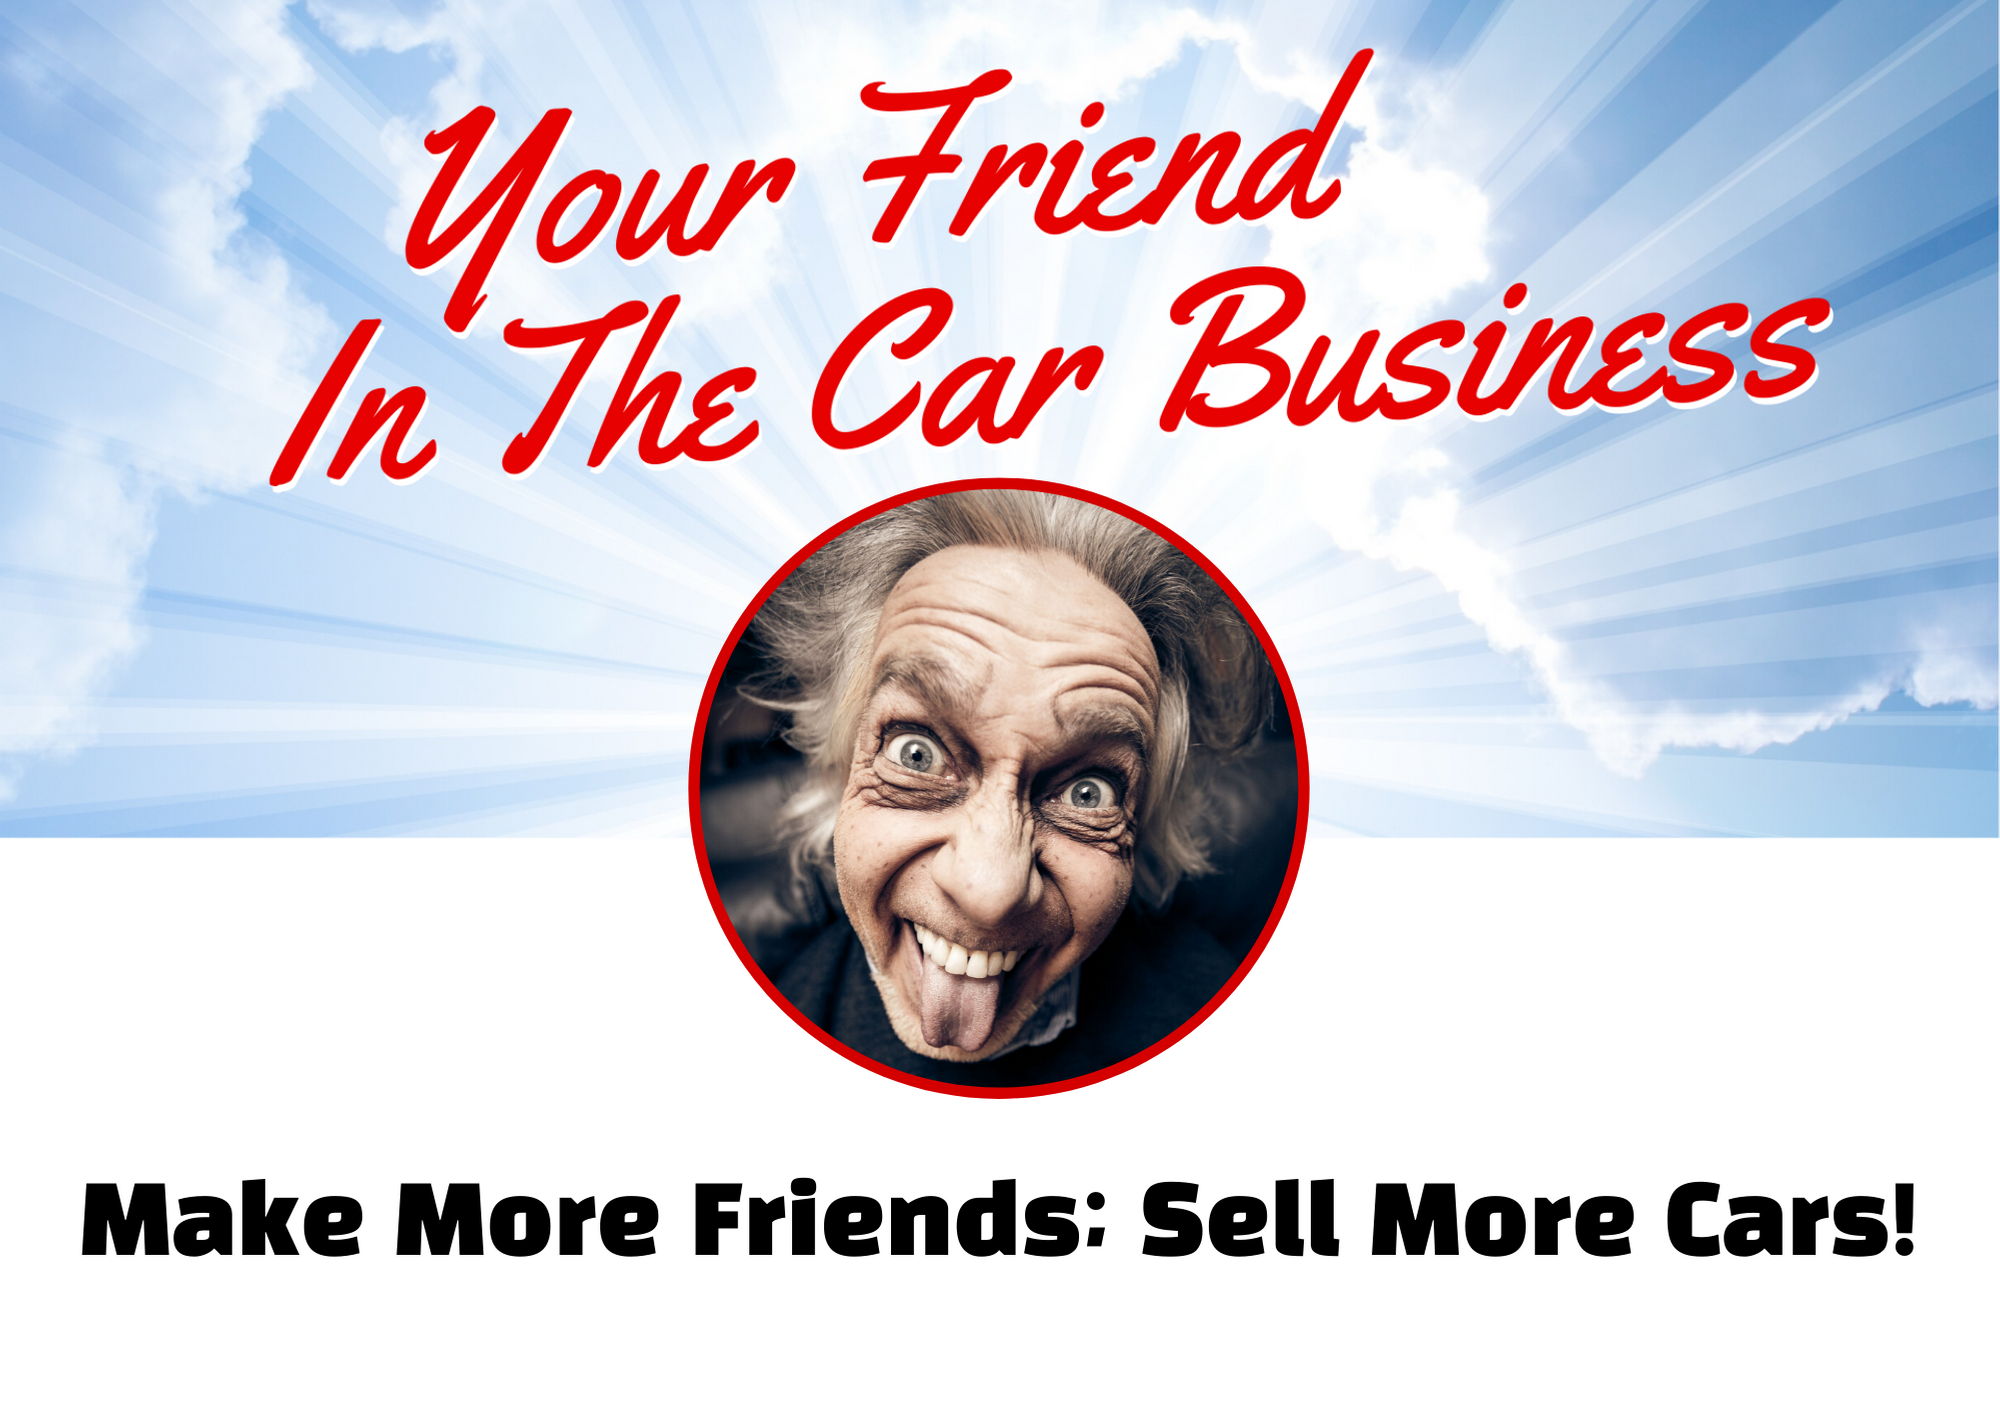 Terry Lancaster Car Sales Video Marketing